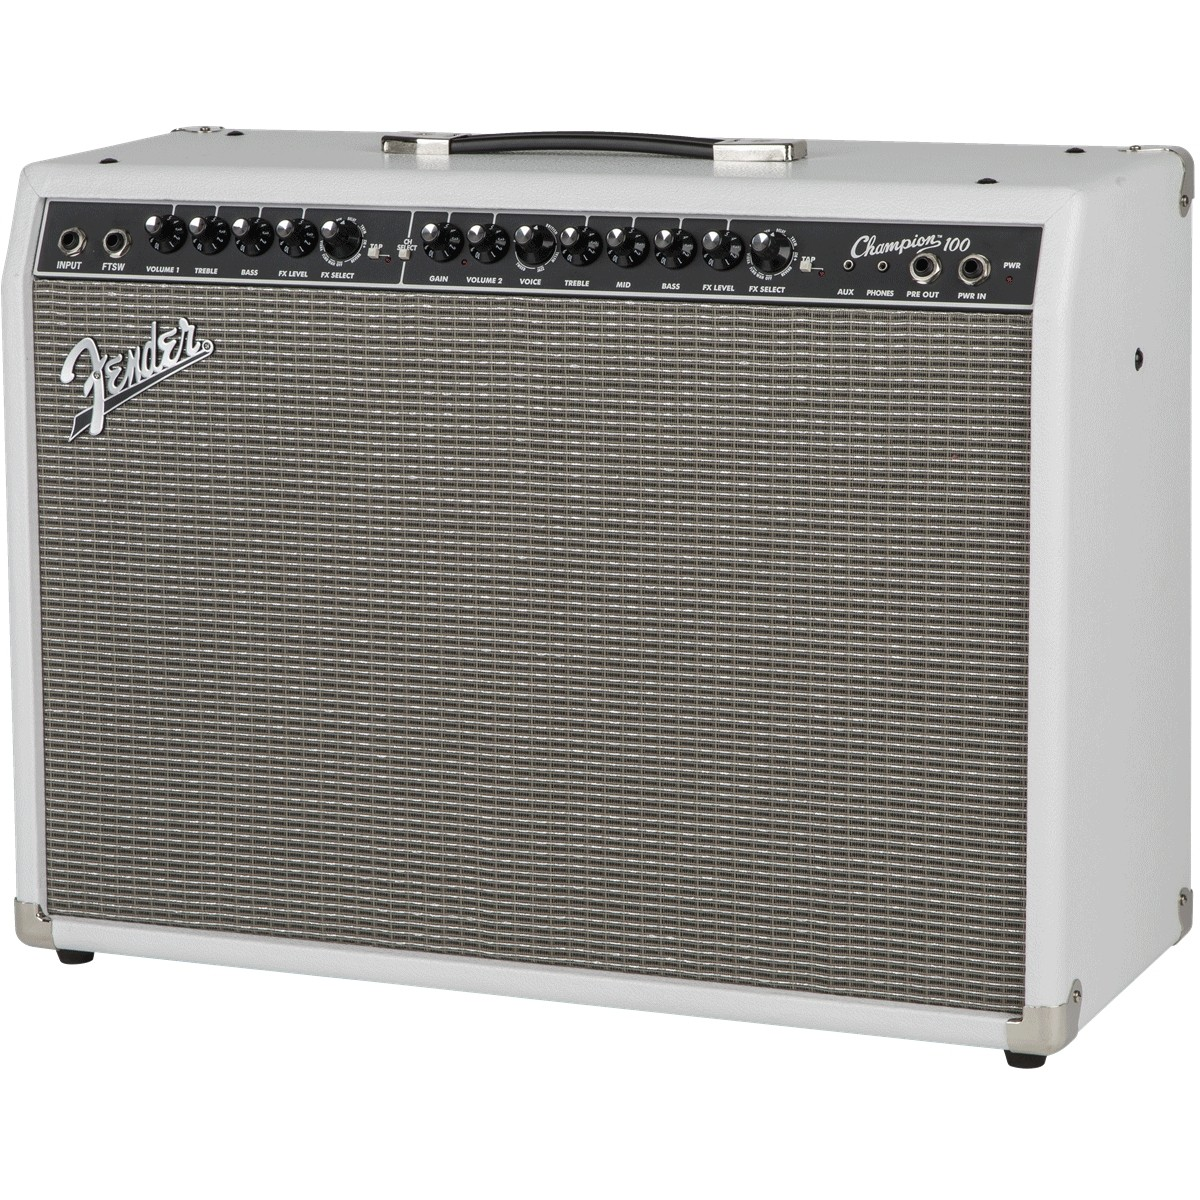 disc fender champion 100 limited edition guitar combo amp snow white at gear4music. Black Bedroom Furniture Sets. Home Design Ideas